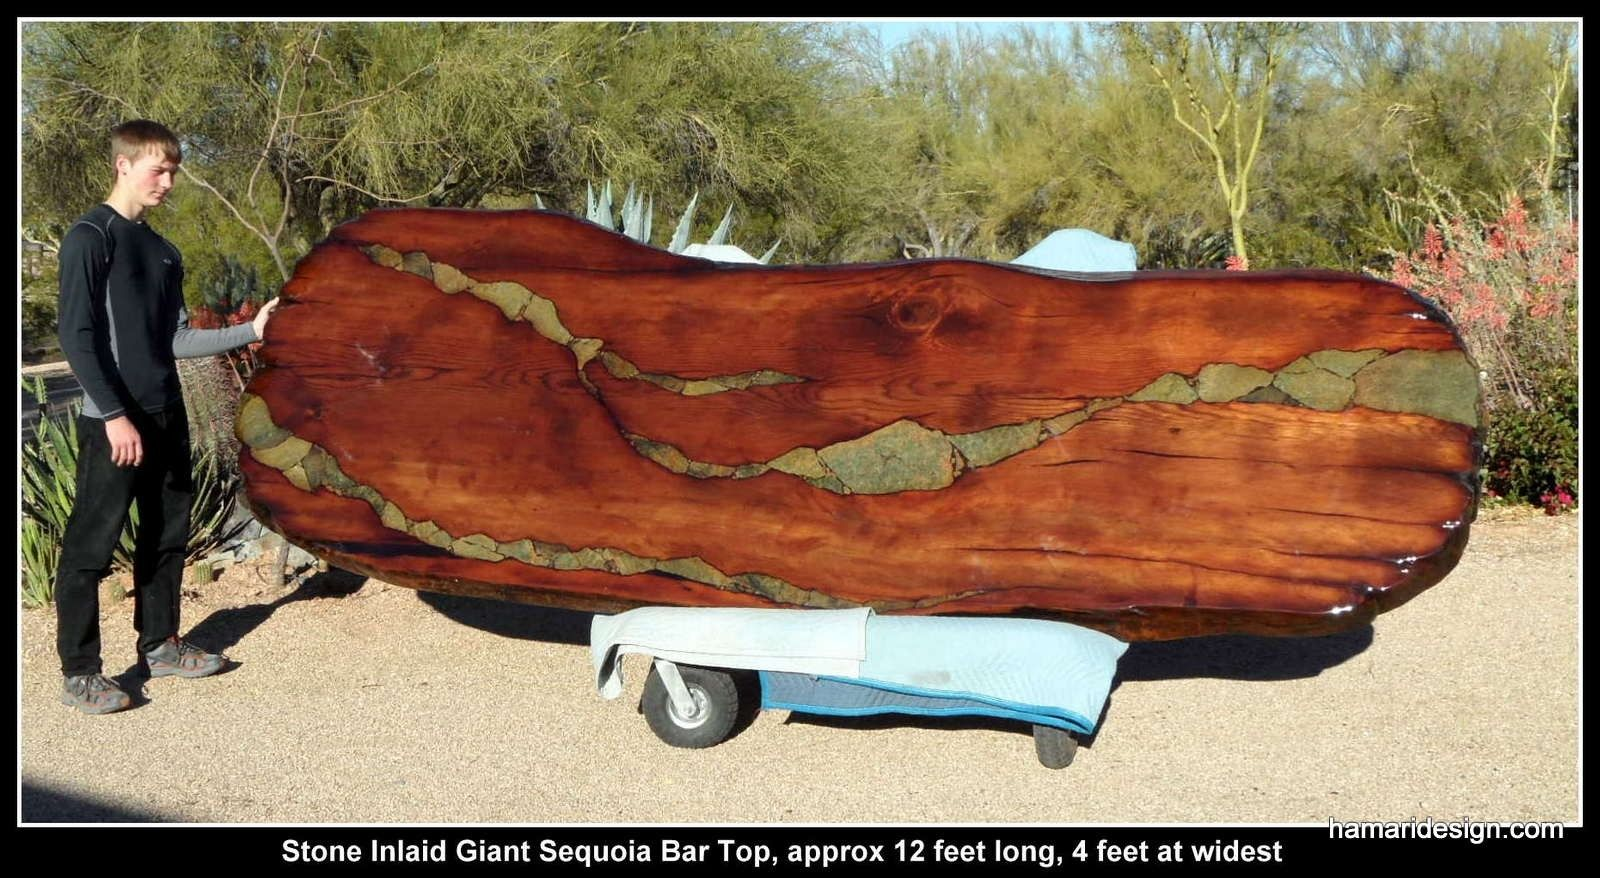 Handmade Live Edge Wood Slab Giant Sequoia Redwood Bar